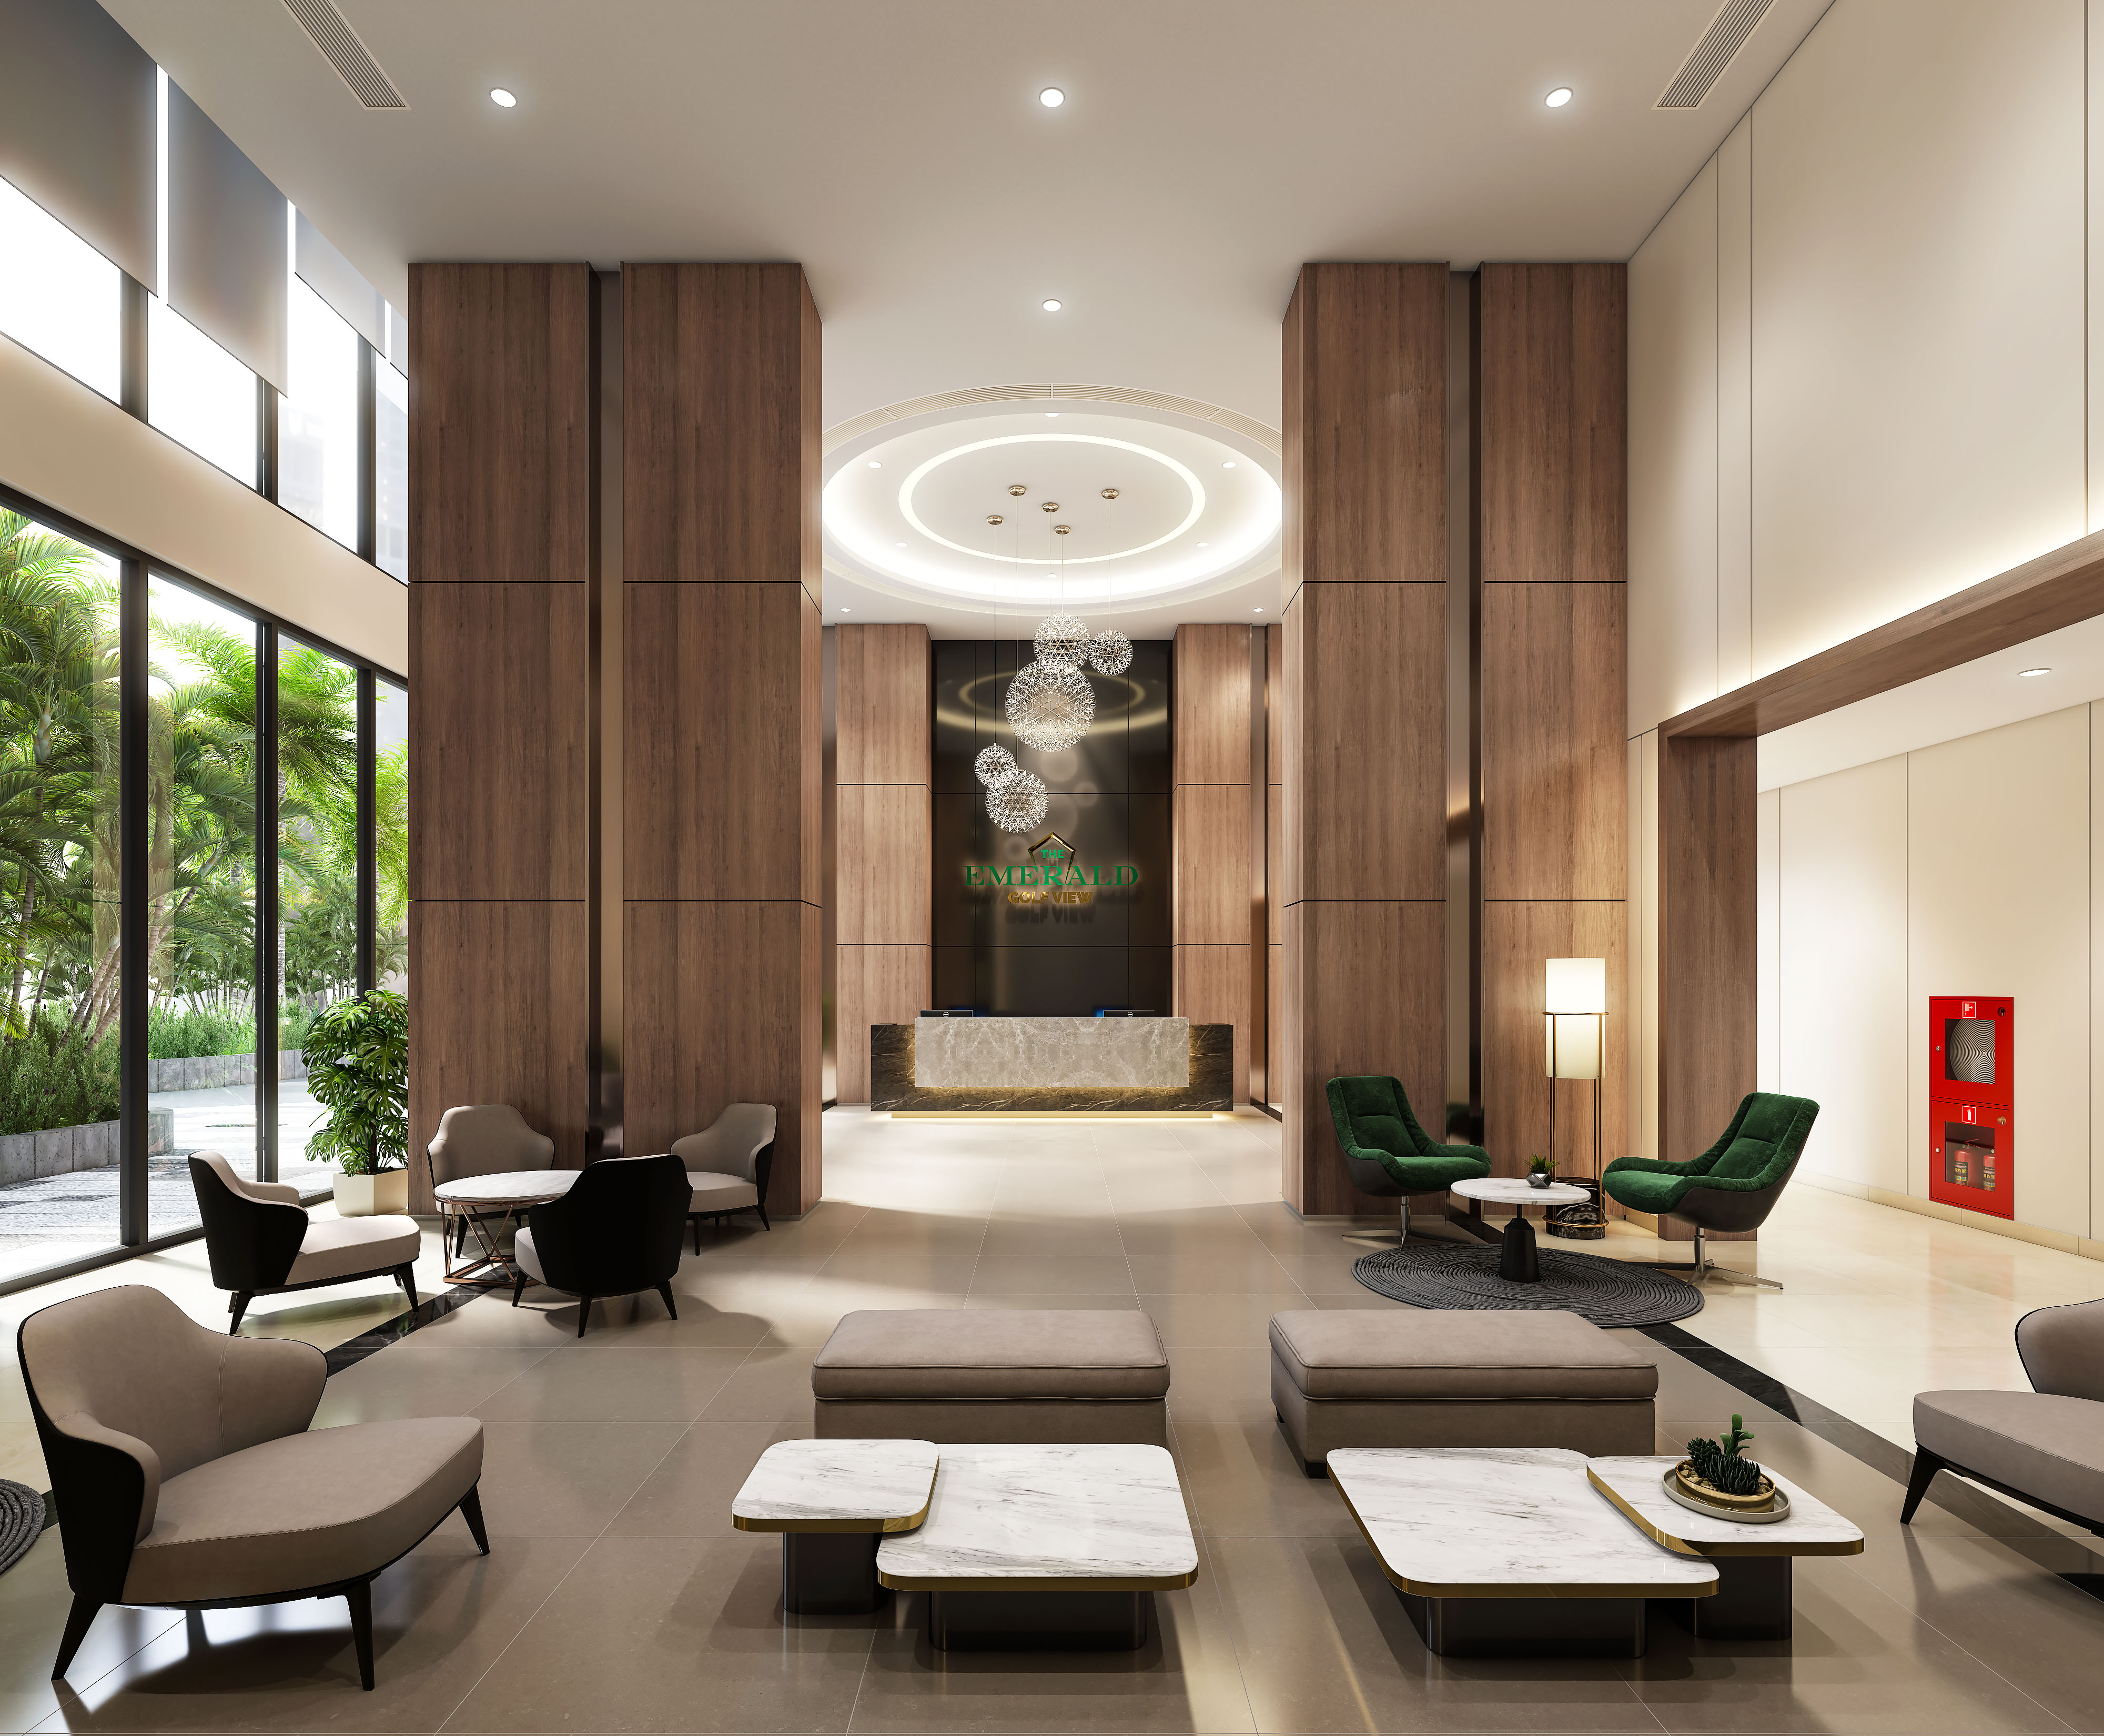 THE EMERALD GOLF VIEW HIGH-CLASS APARTMENTS FOR EXPERTS